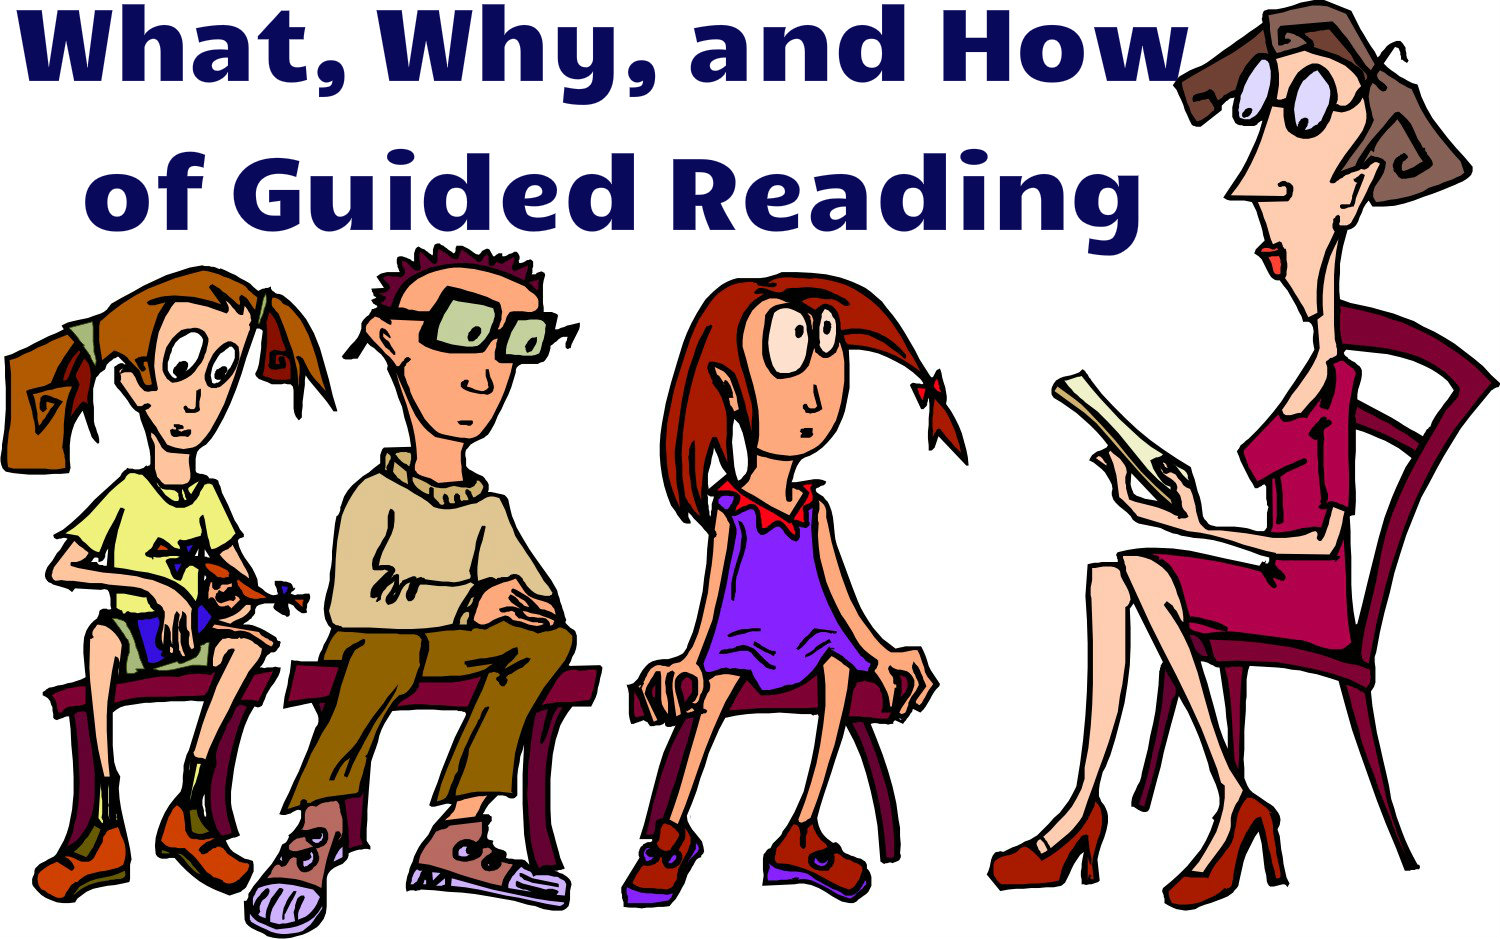 Guided Reading Clipart Free Clip Art Images